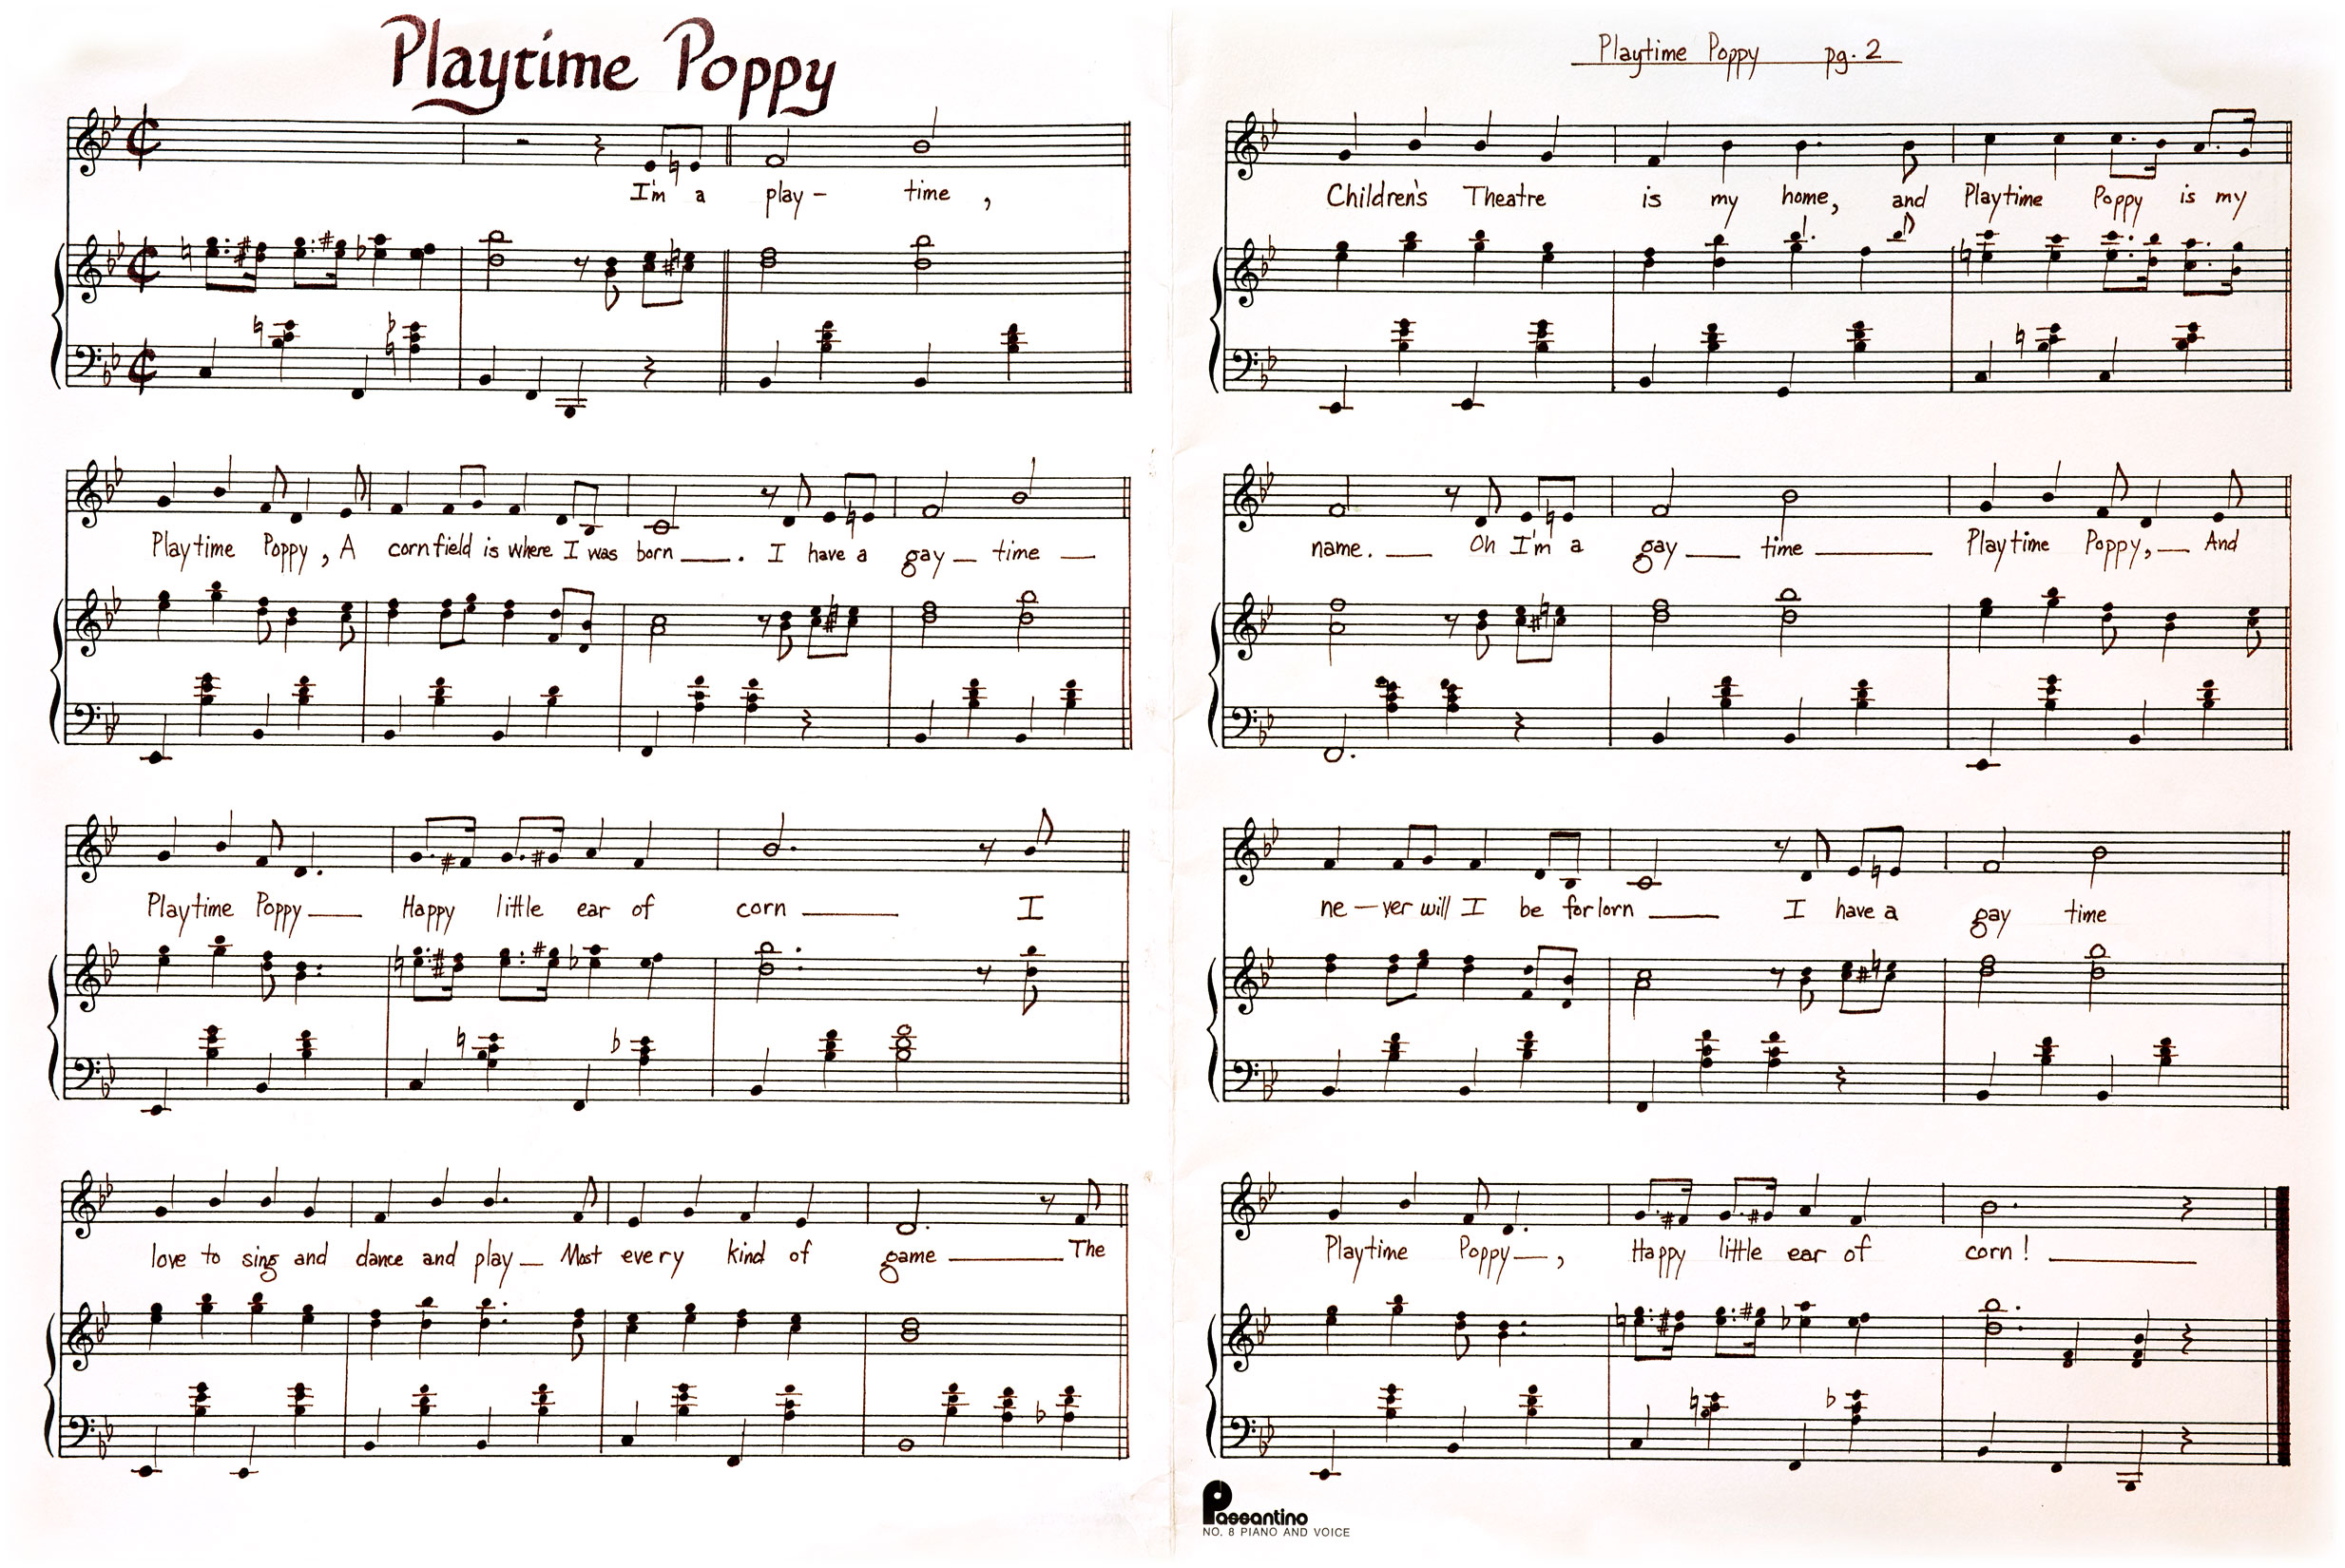 Playtime Poppy sheet music